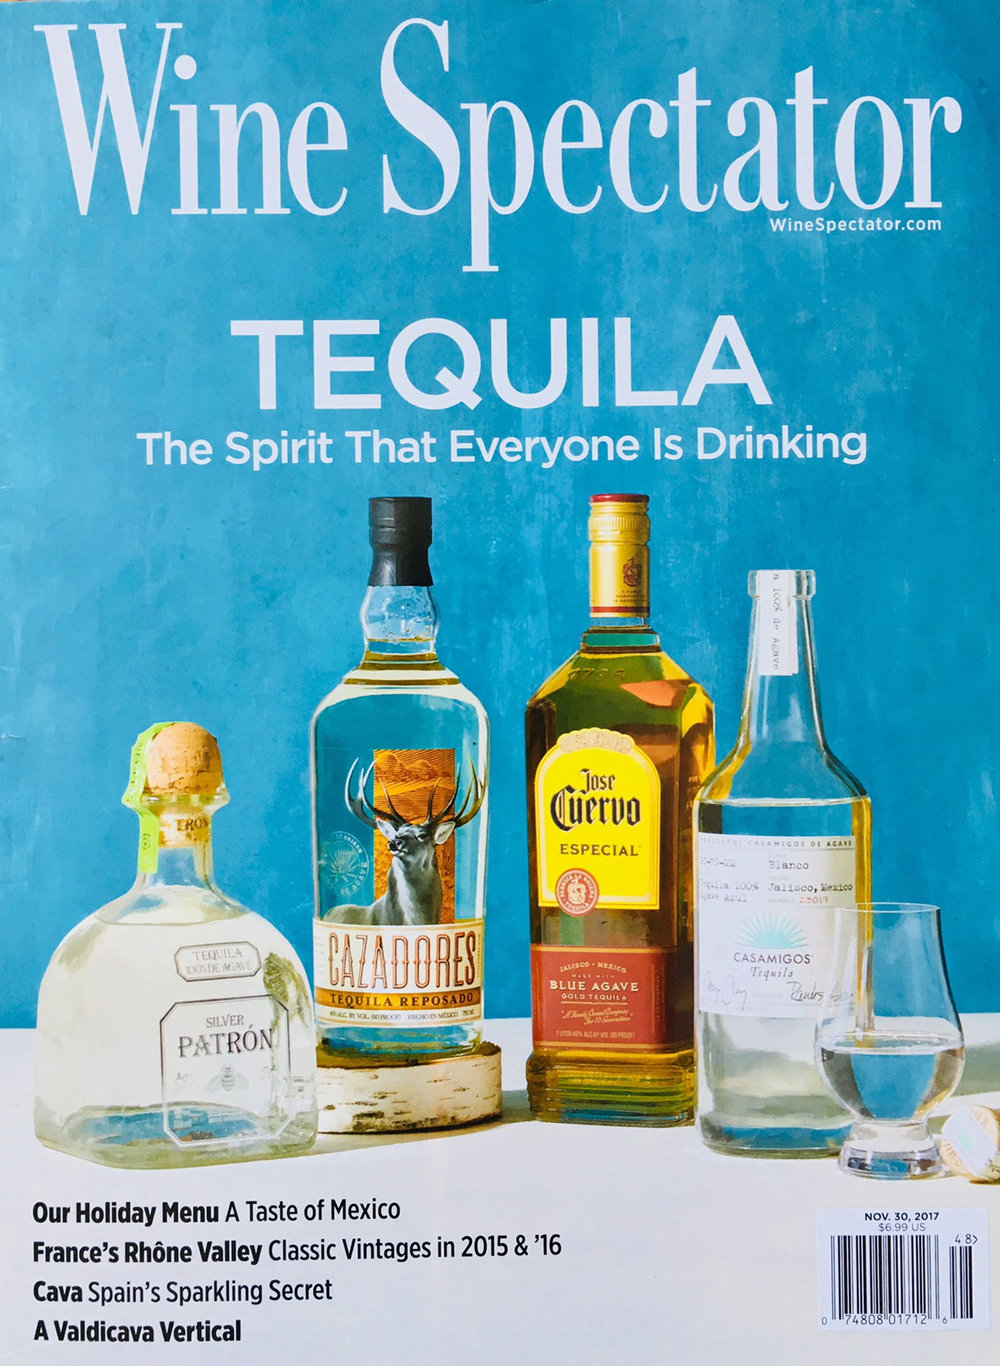 Evi-Abeler-Photography_Wine-Spectator-Tequila-Cover.jpg